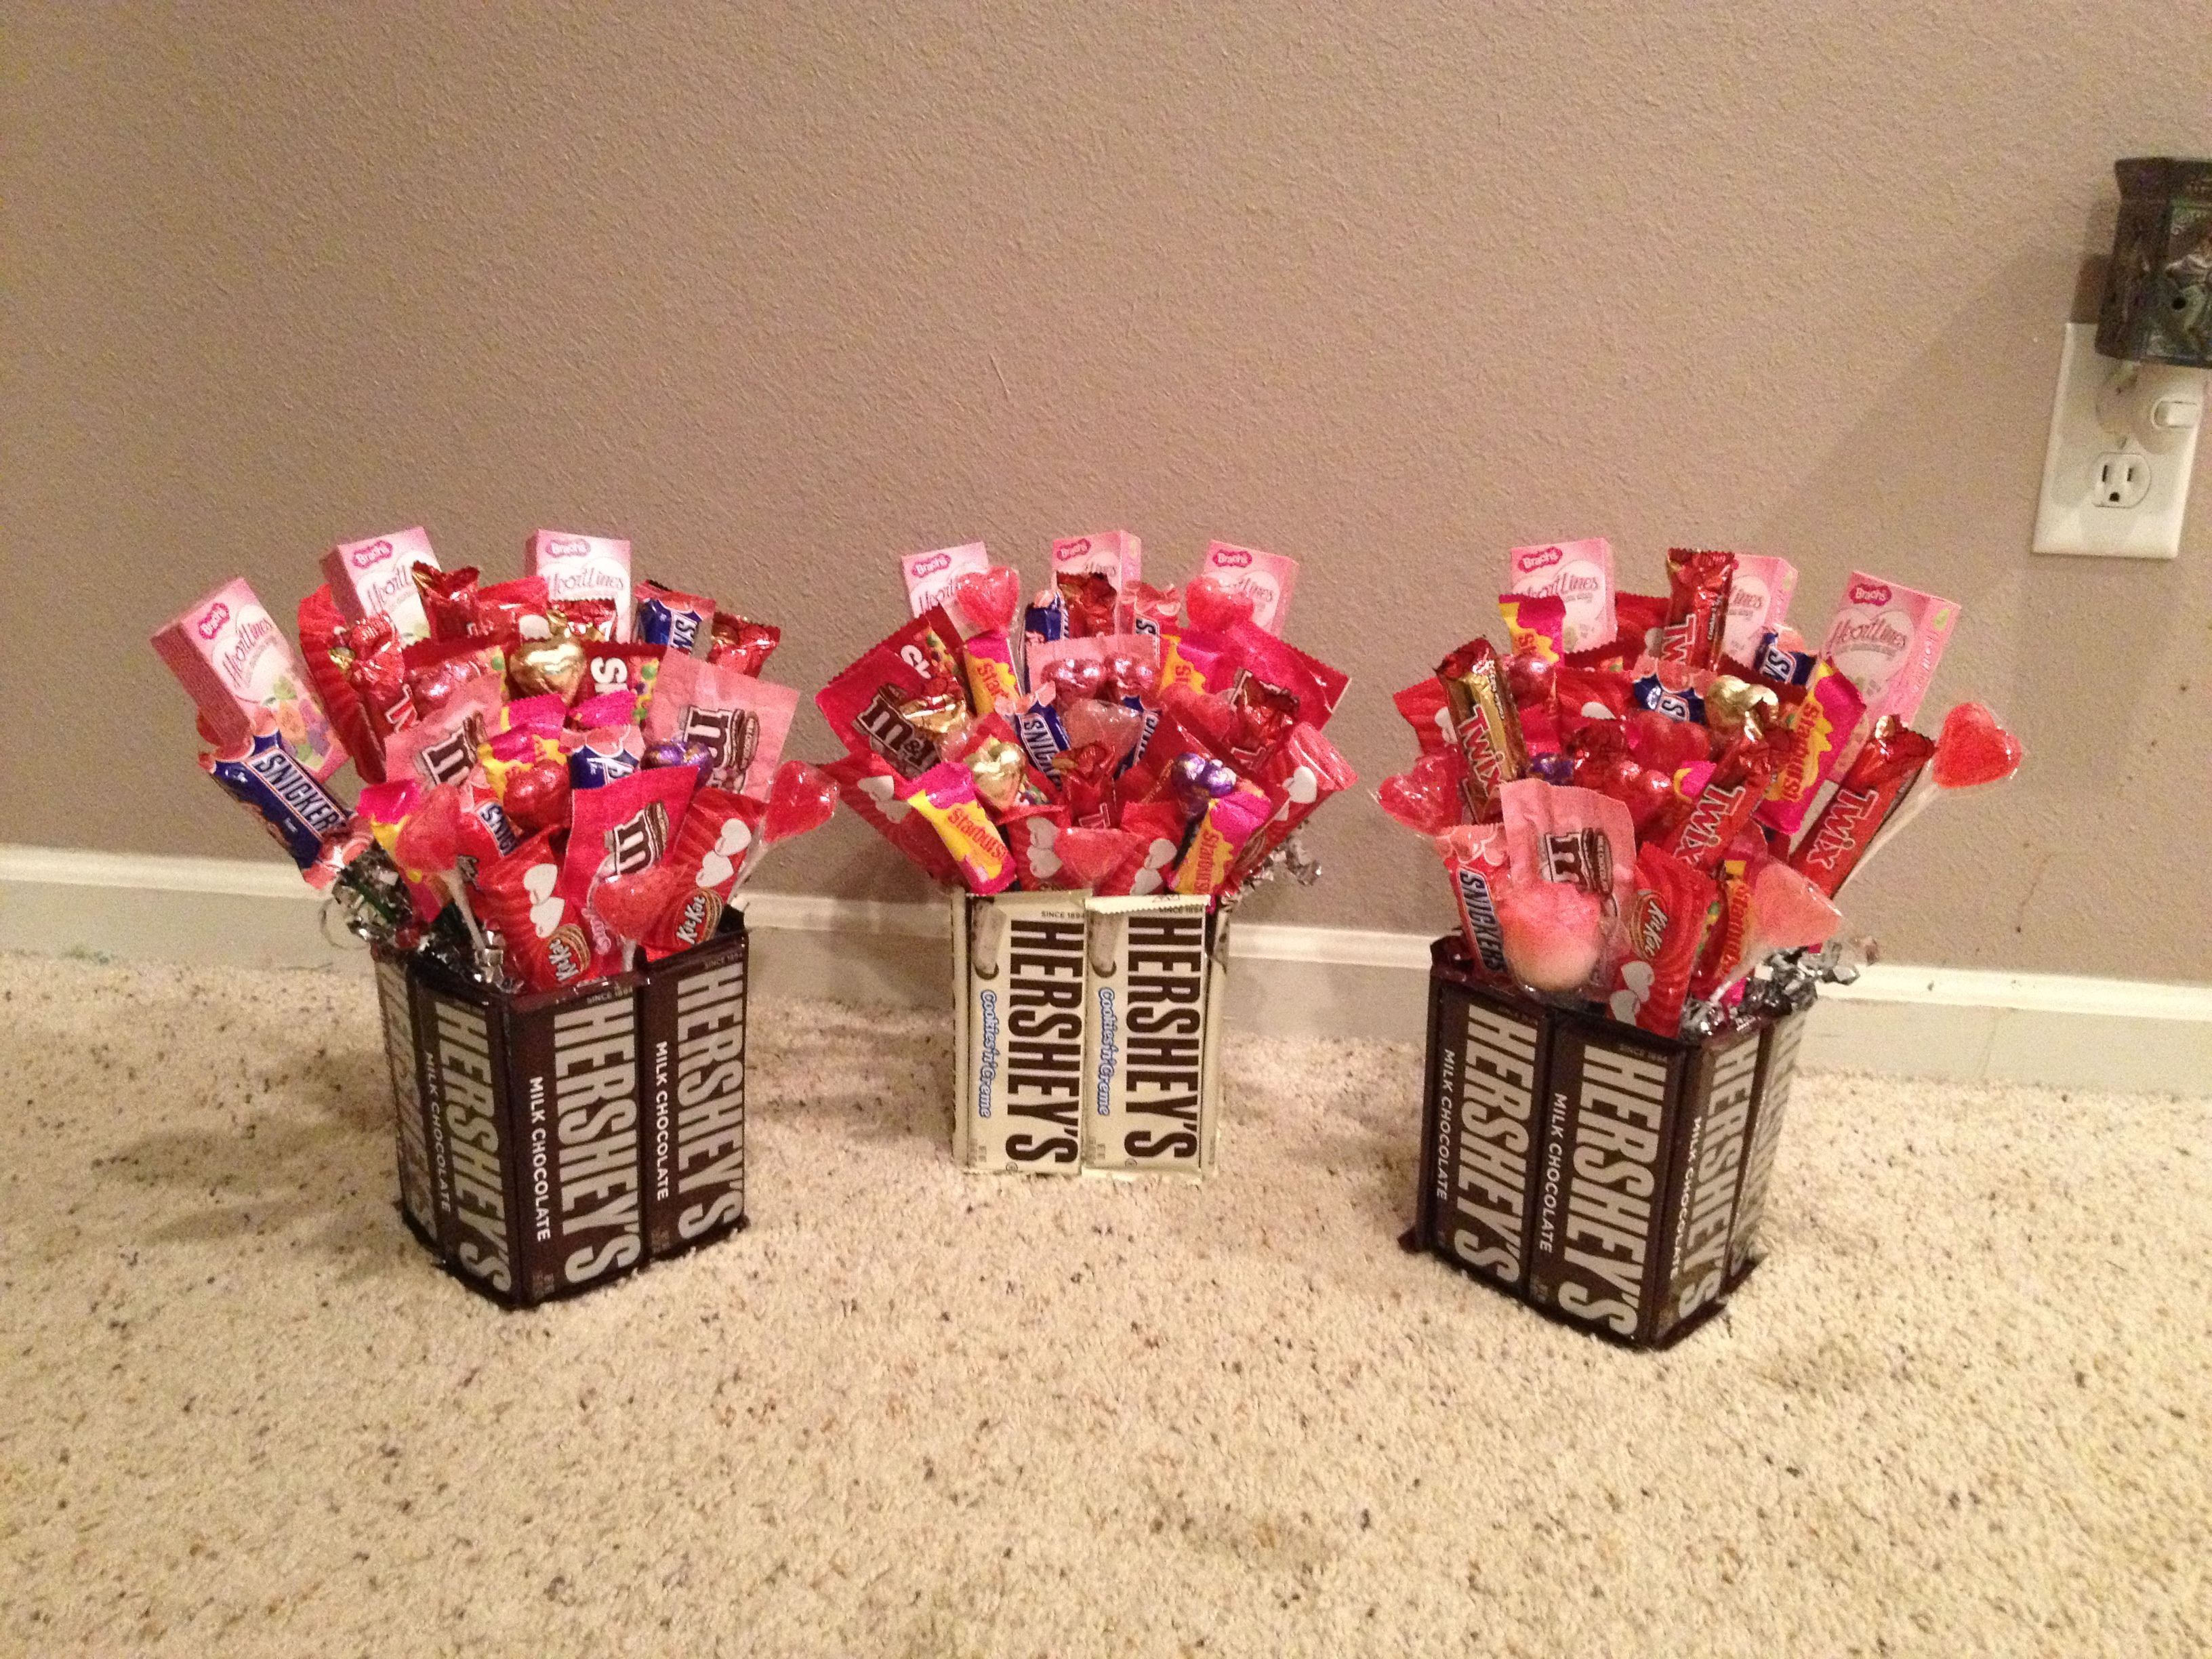 373 best candy bouquet images on pinterest candy bouquet candy valentine candy bouquets made for my children izmirmasajfo Choice Image